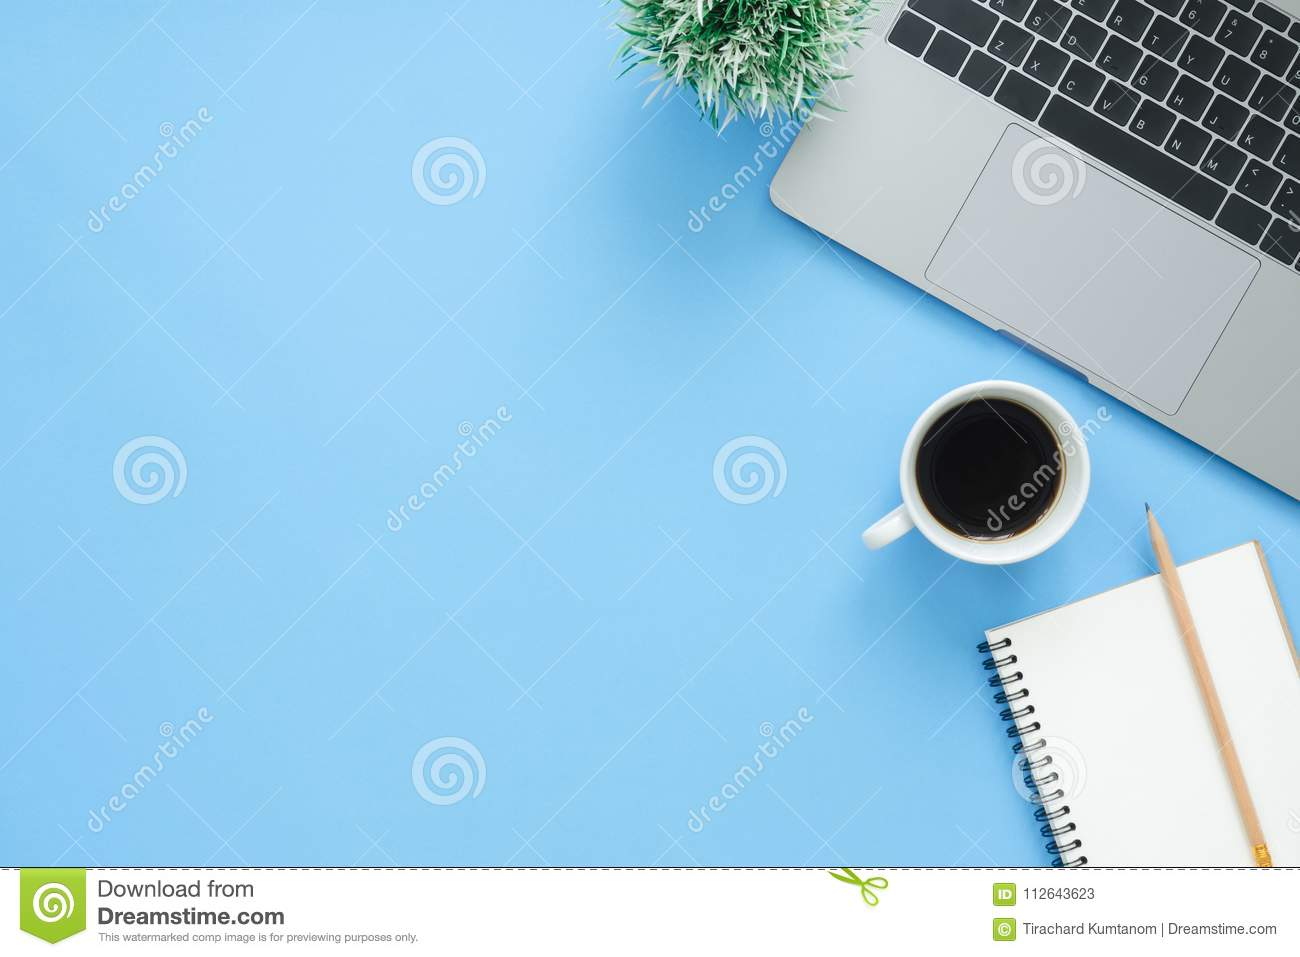 Top view office desk with laptop, notebooks and coffee cup on blue color background.